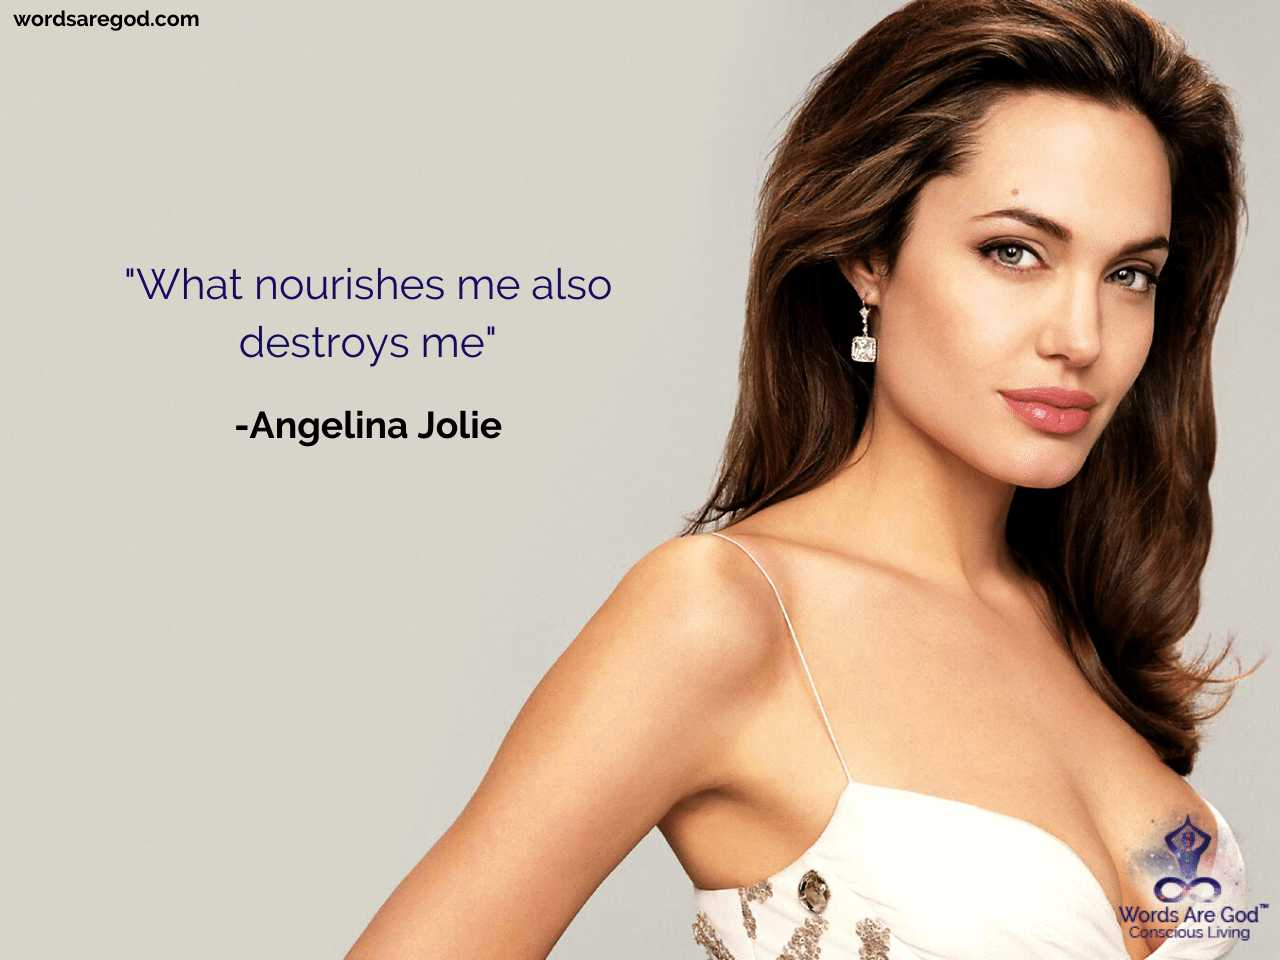 Angelina jolie Quotes by Angelina Jolie